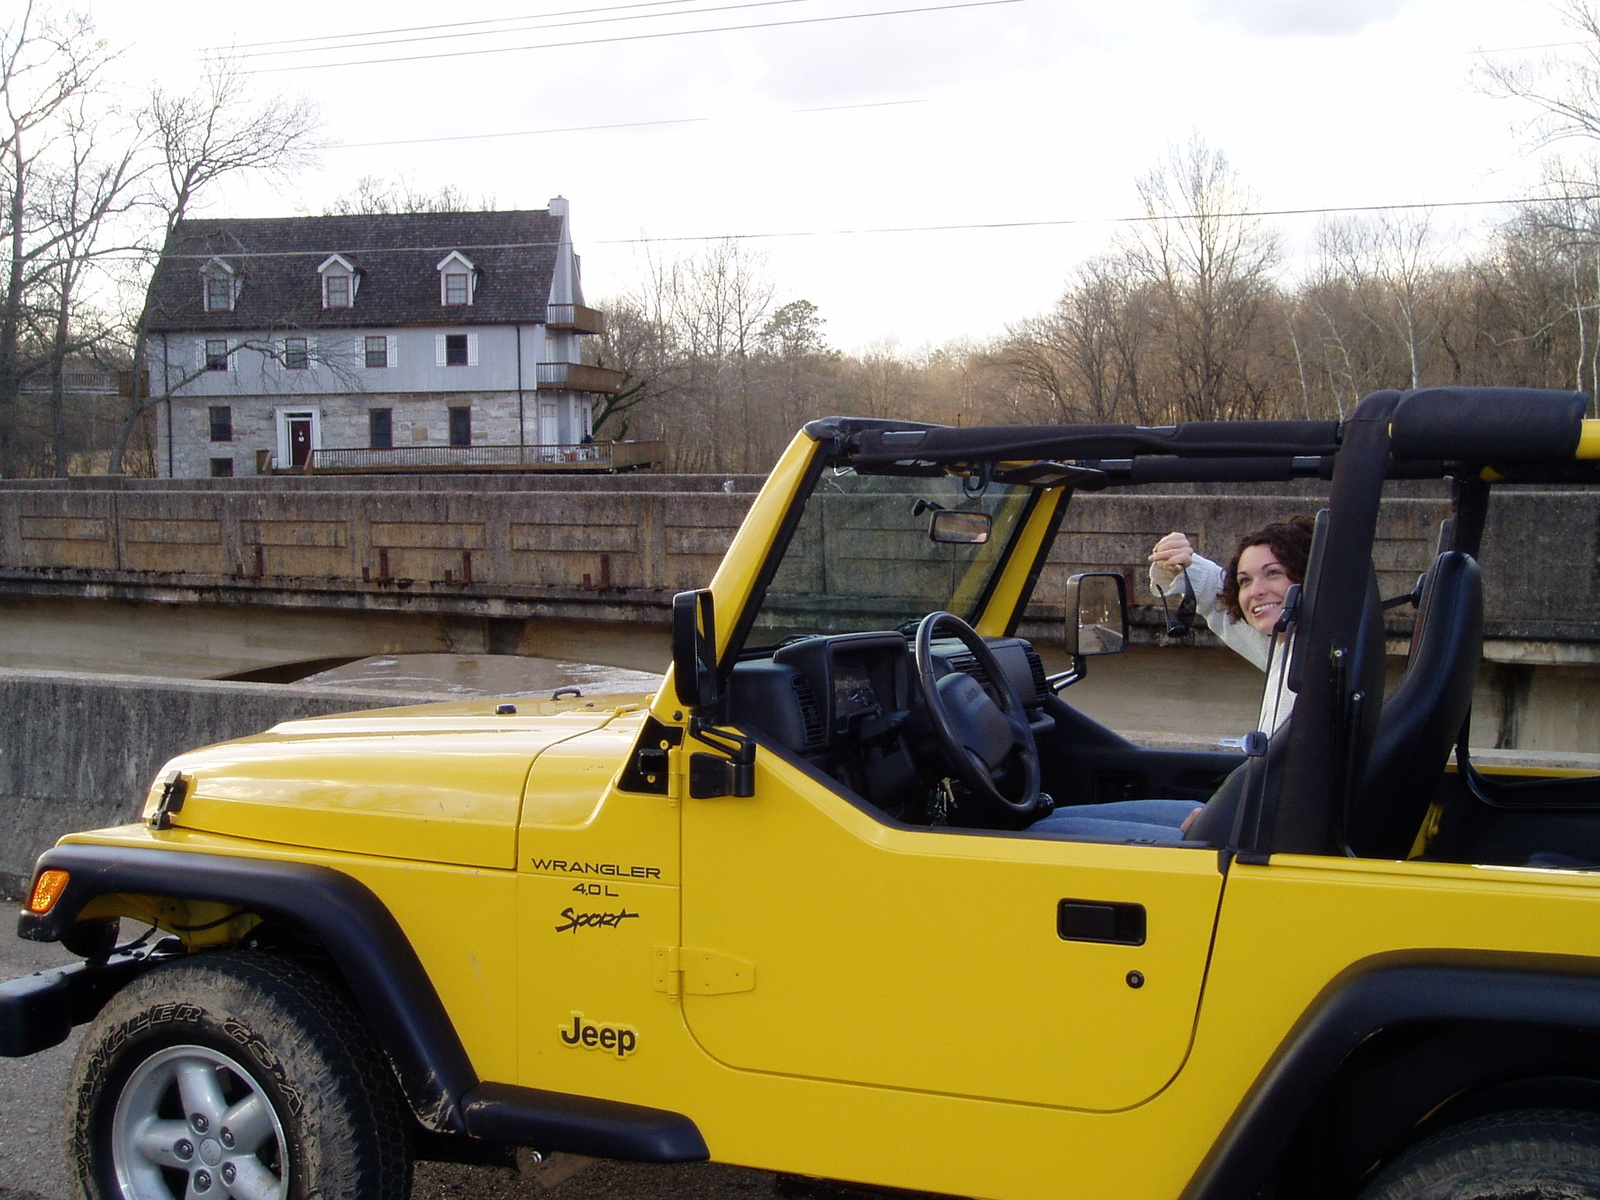 Used 2009 jeep wrangler consumer reviews edmunds share the knownledge